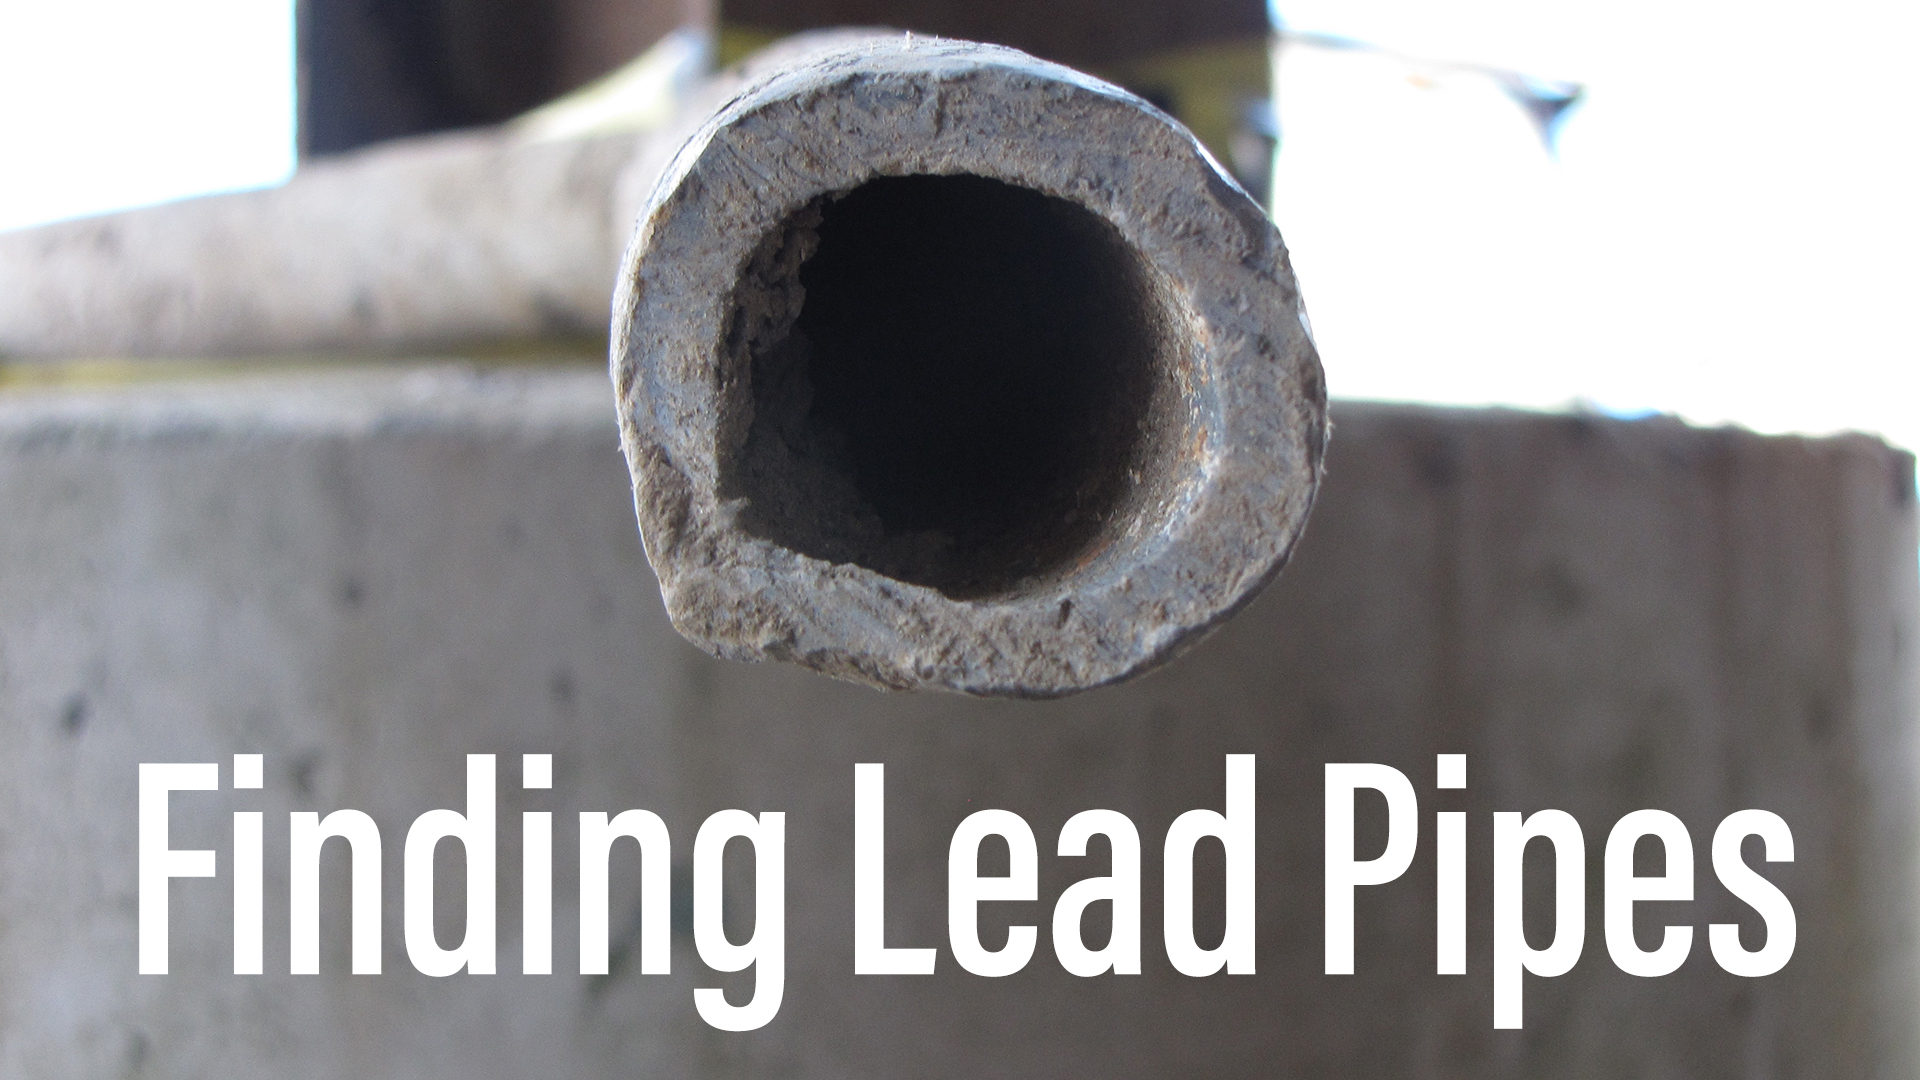 Finding Lead Pipes Thumbnail